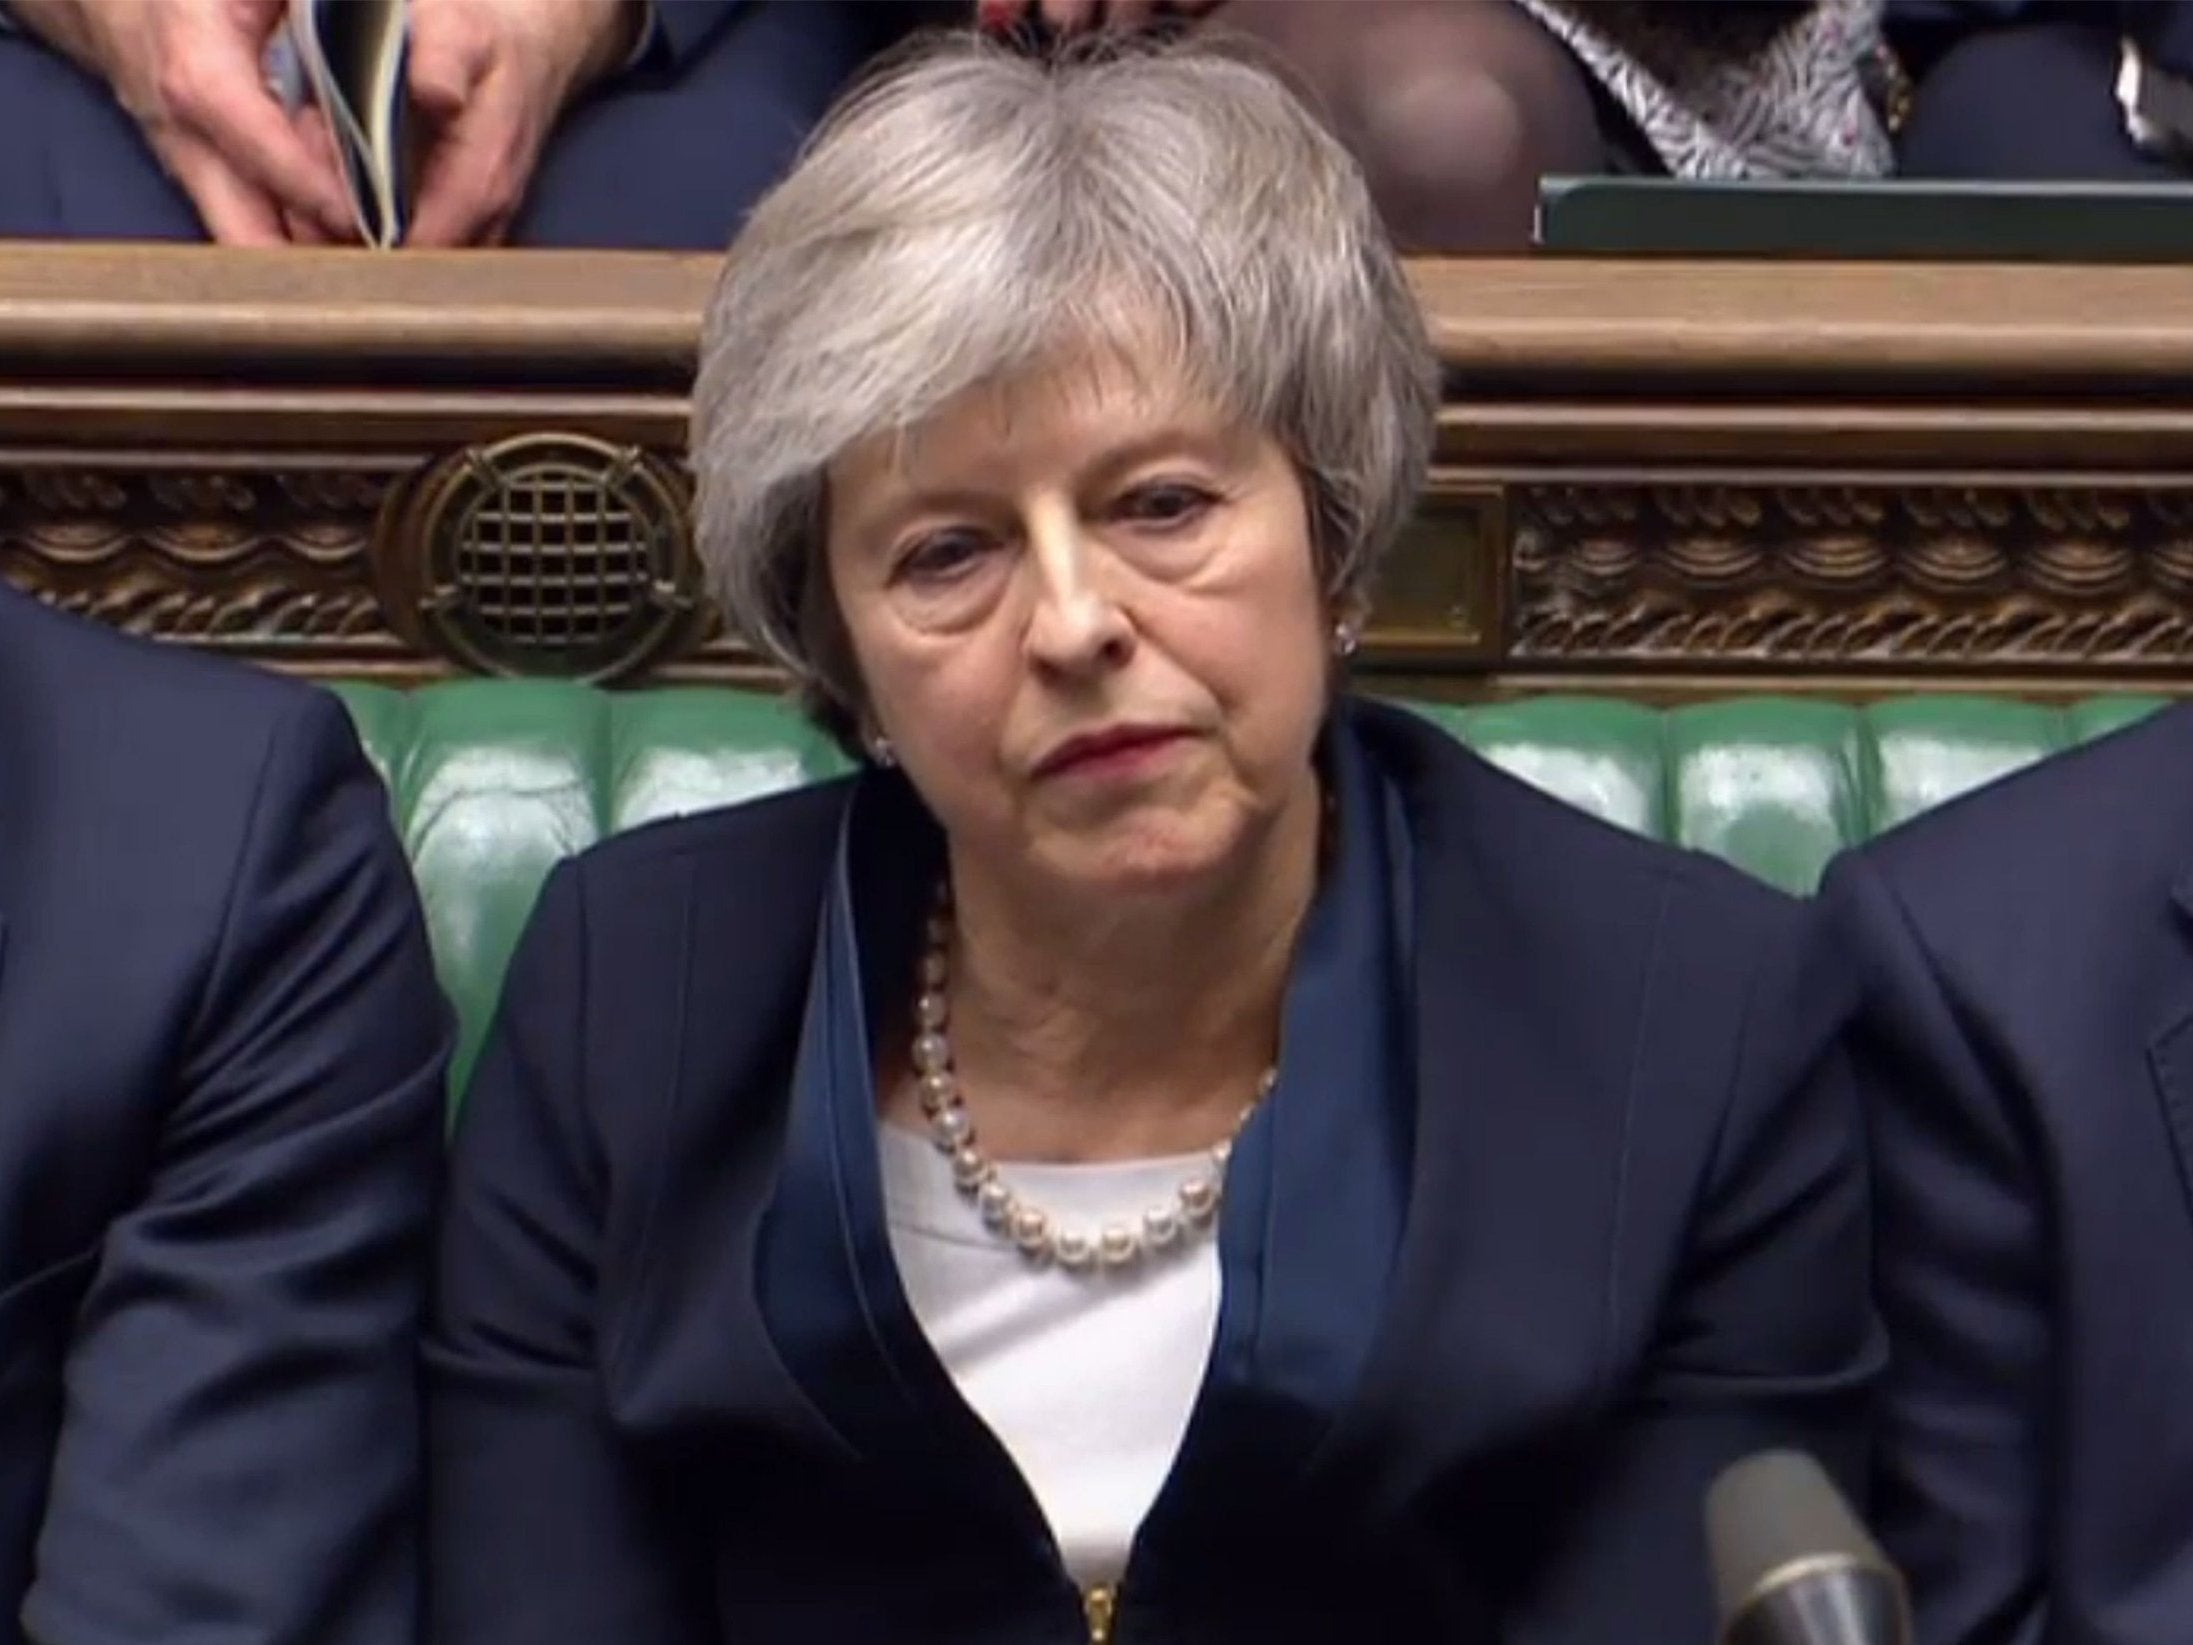 Brexit: Theresa May faces mistrust after a historic defeat at 230 votes - The Independent